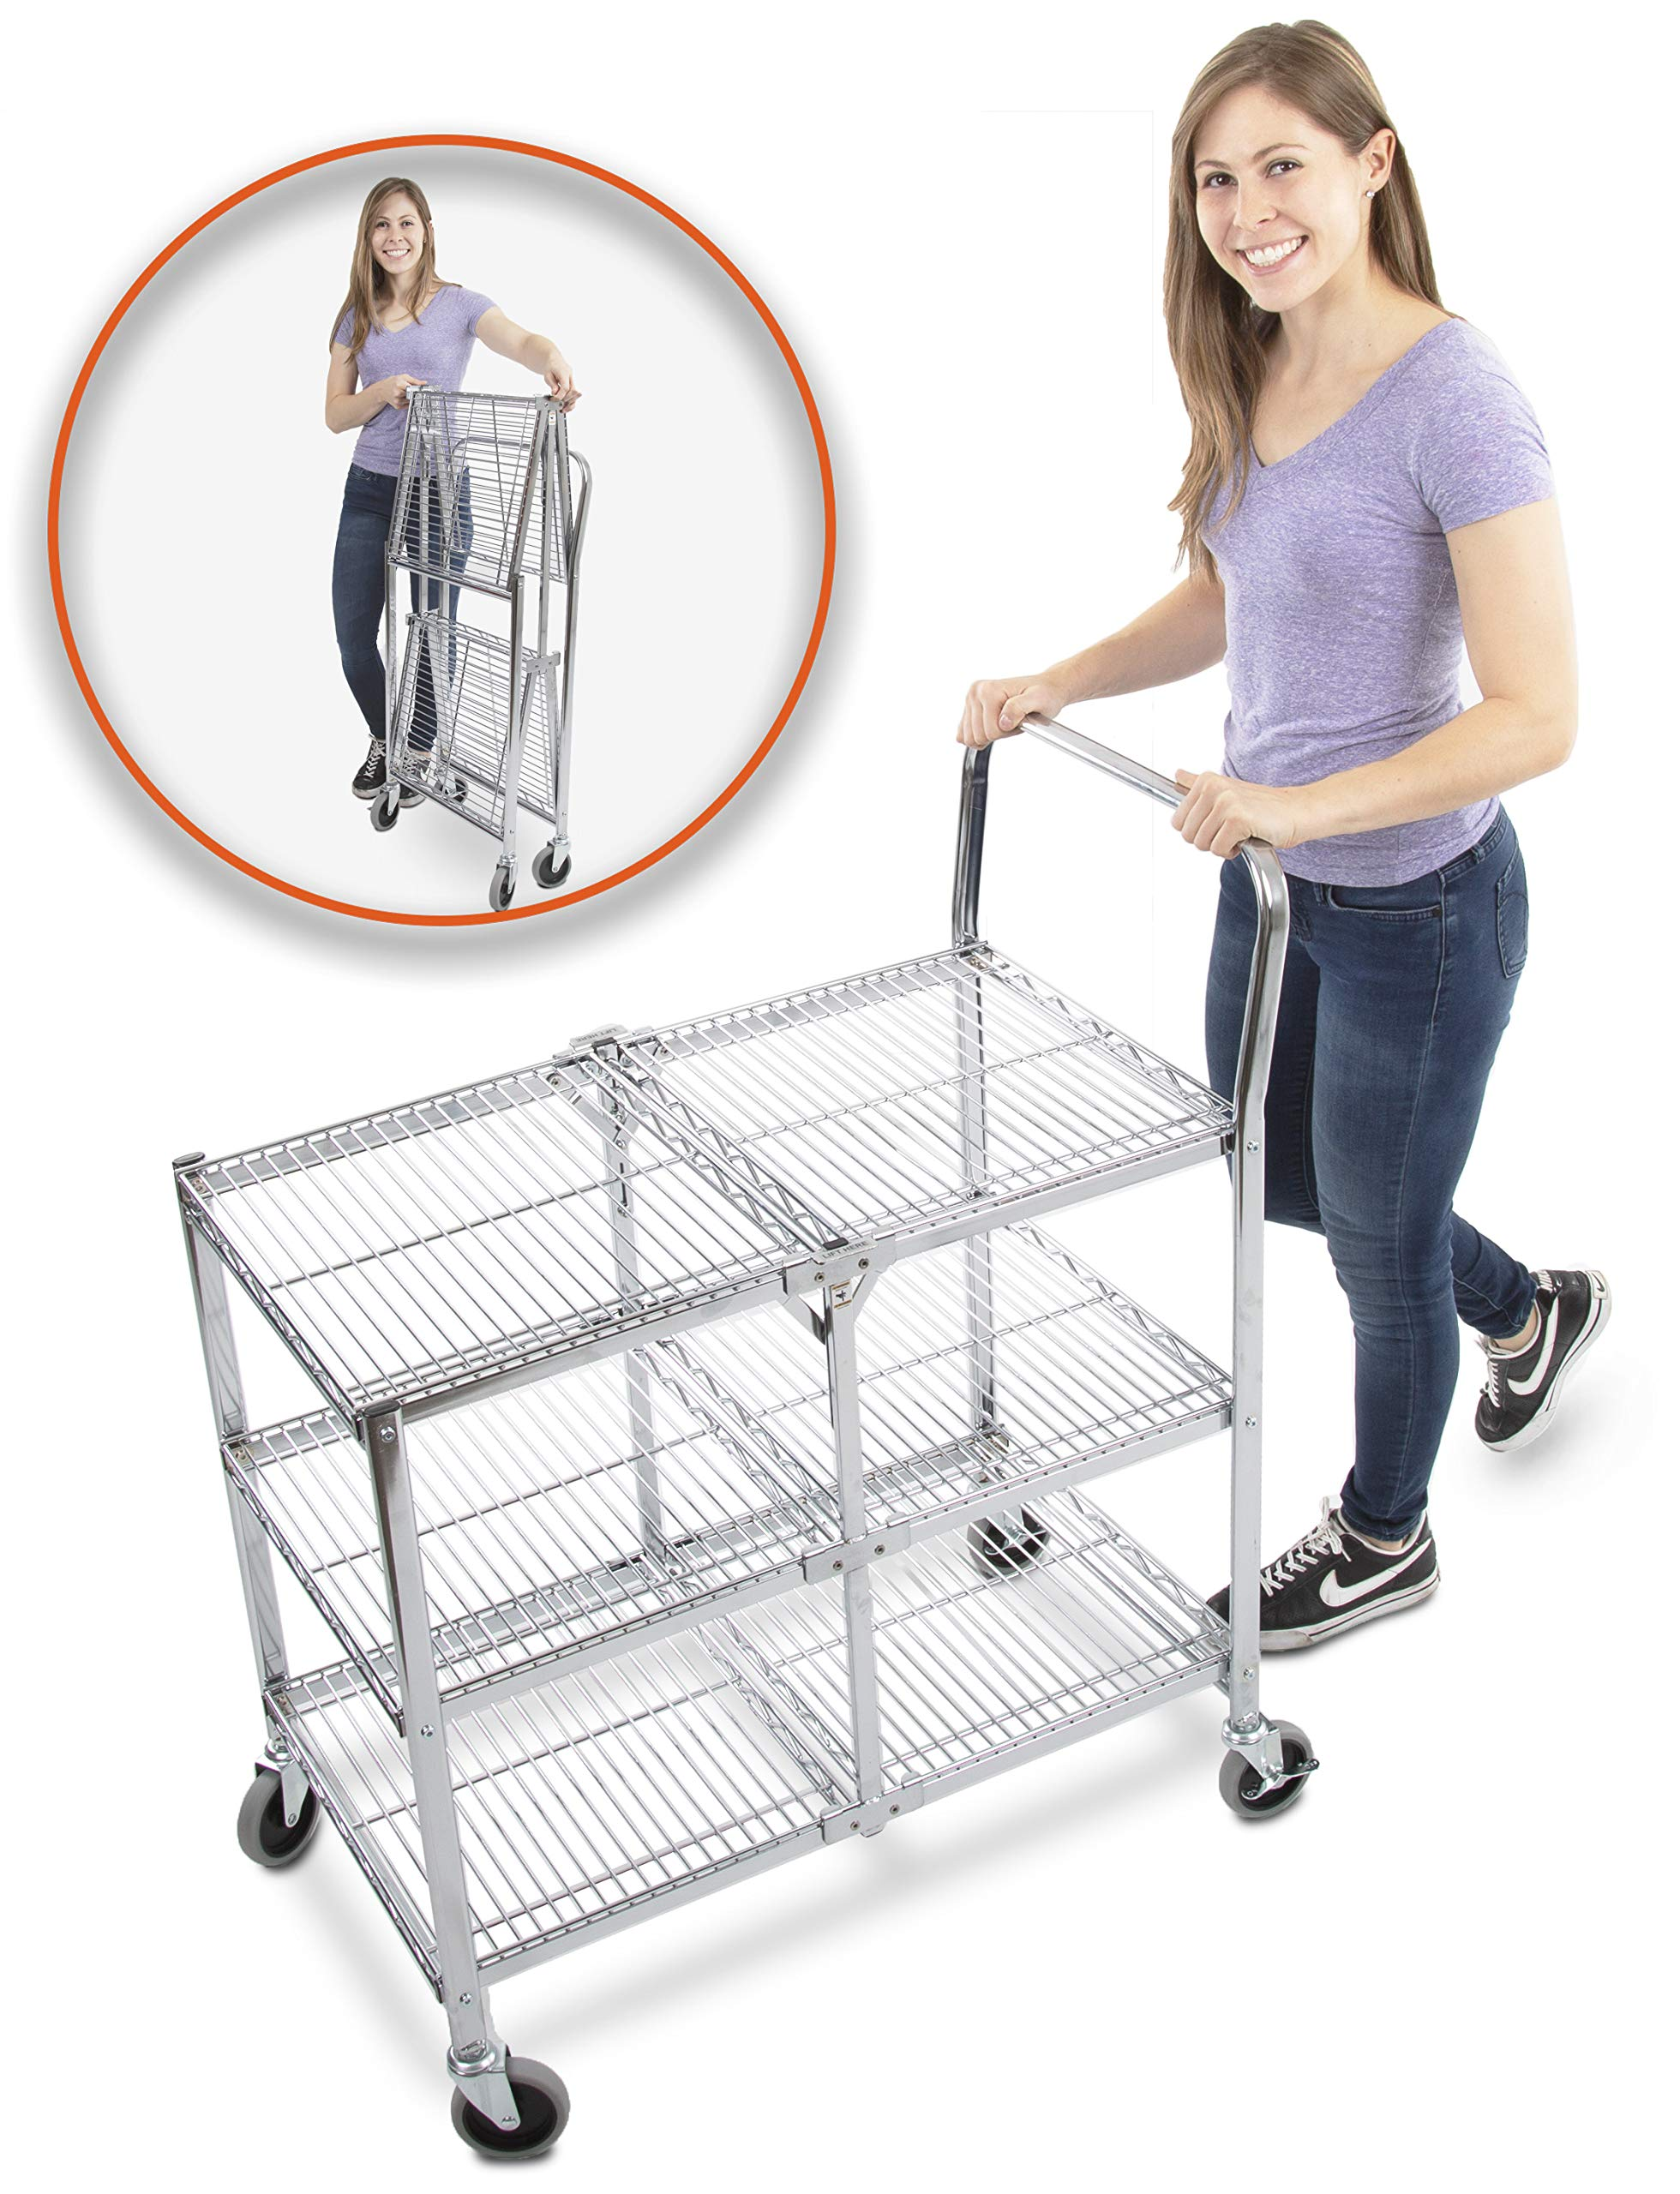 Original Tubstr - Collapsible Wire Cart - 3 Shelf Wire Utility Cart Provides Convenient Transport, Holds 300 Pounds and Folds Up for Storage - Commercial Grade by Stand Steady